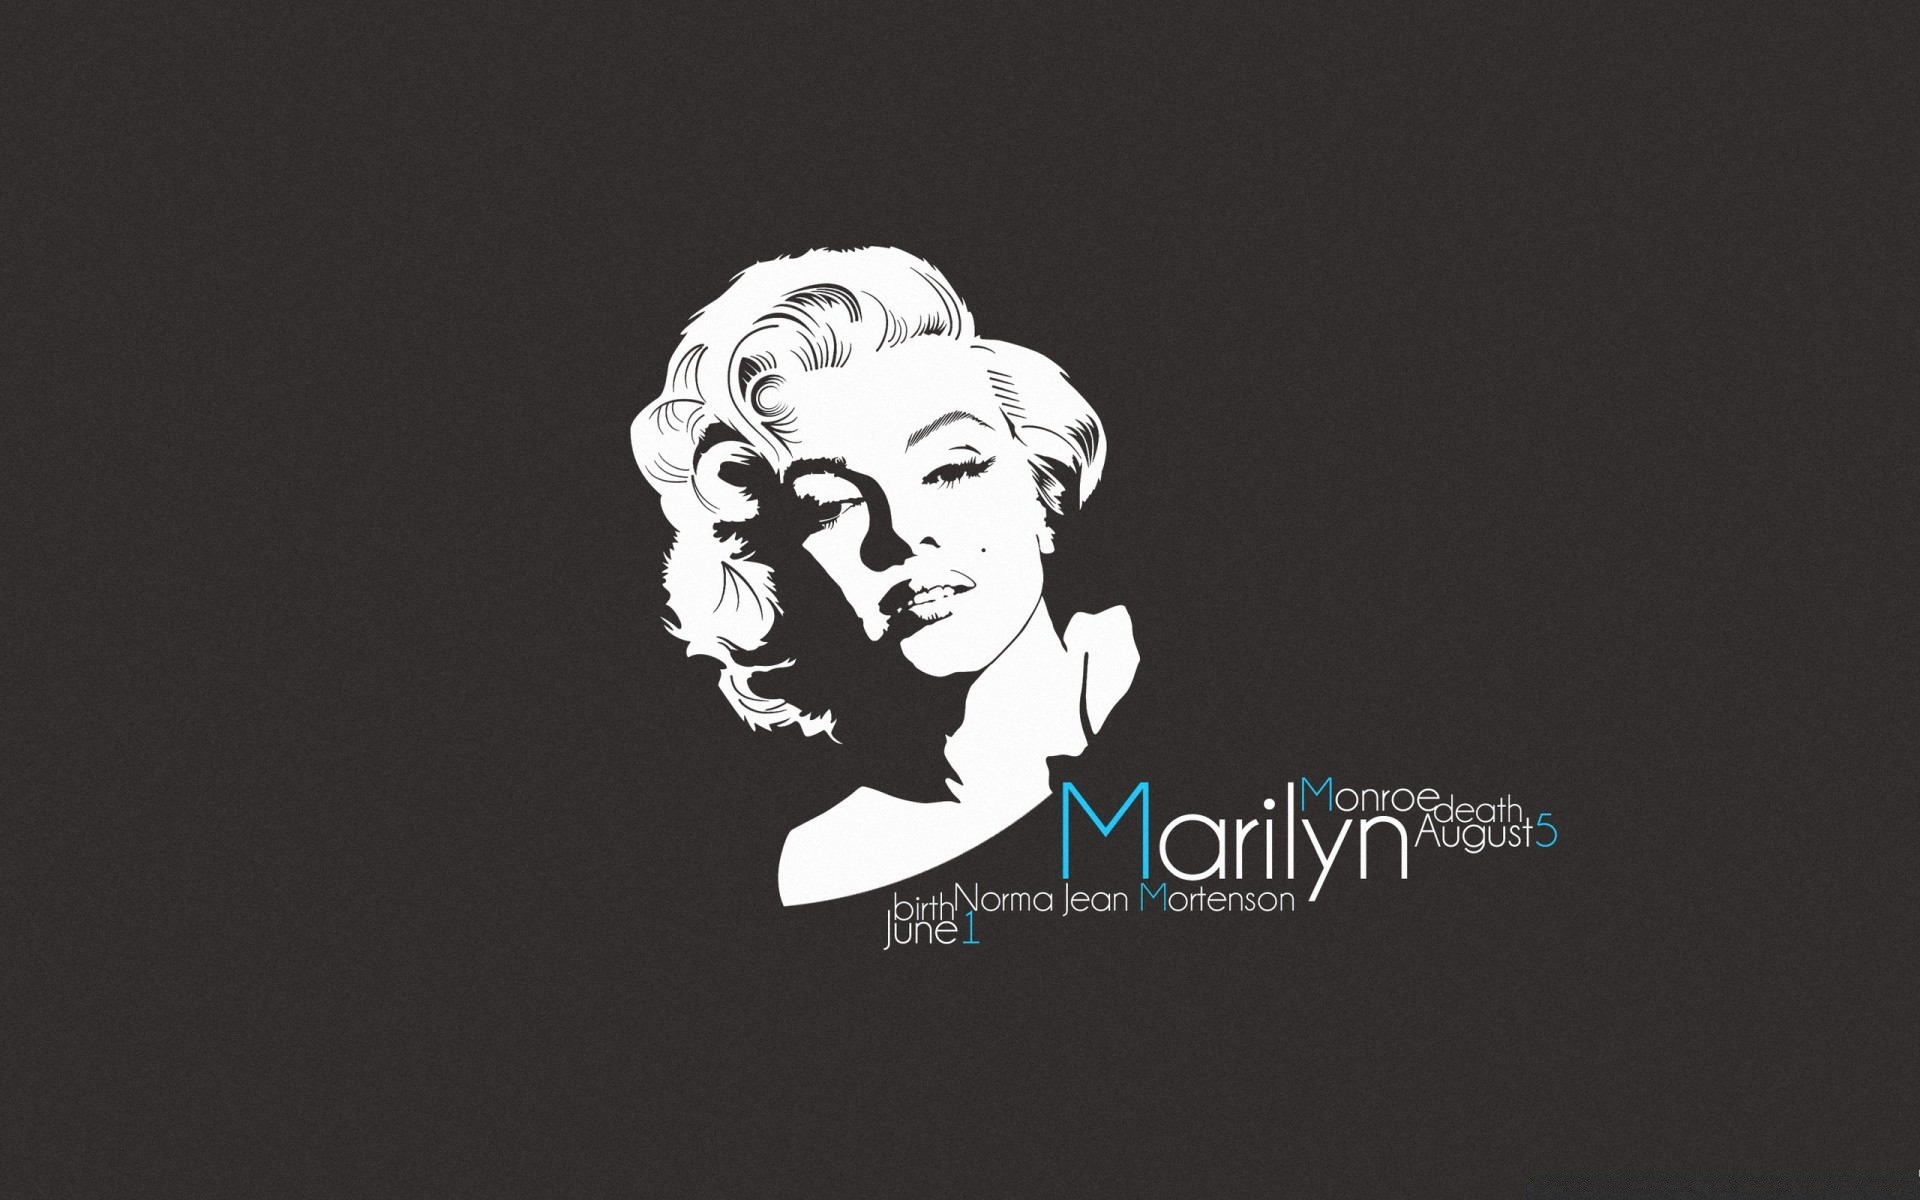 Marilyn Monroe Biography Android Wallpapers